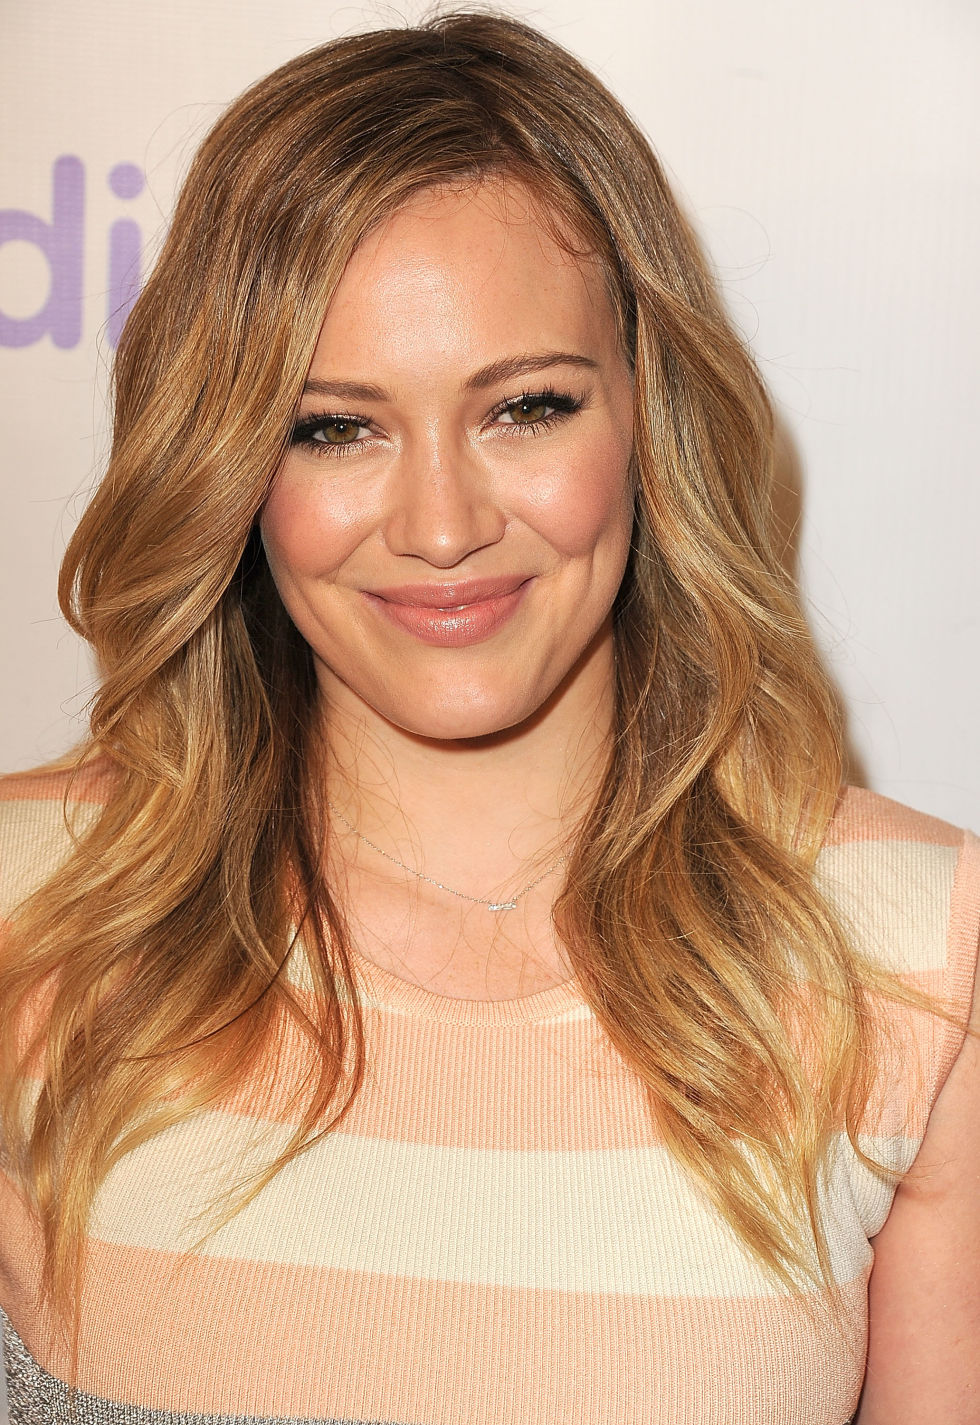 16 dark blonde hair colors ideas - Coloration Blond Clair Beige